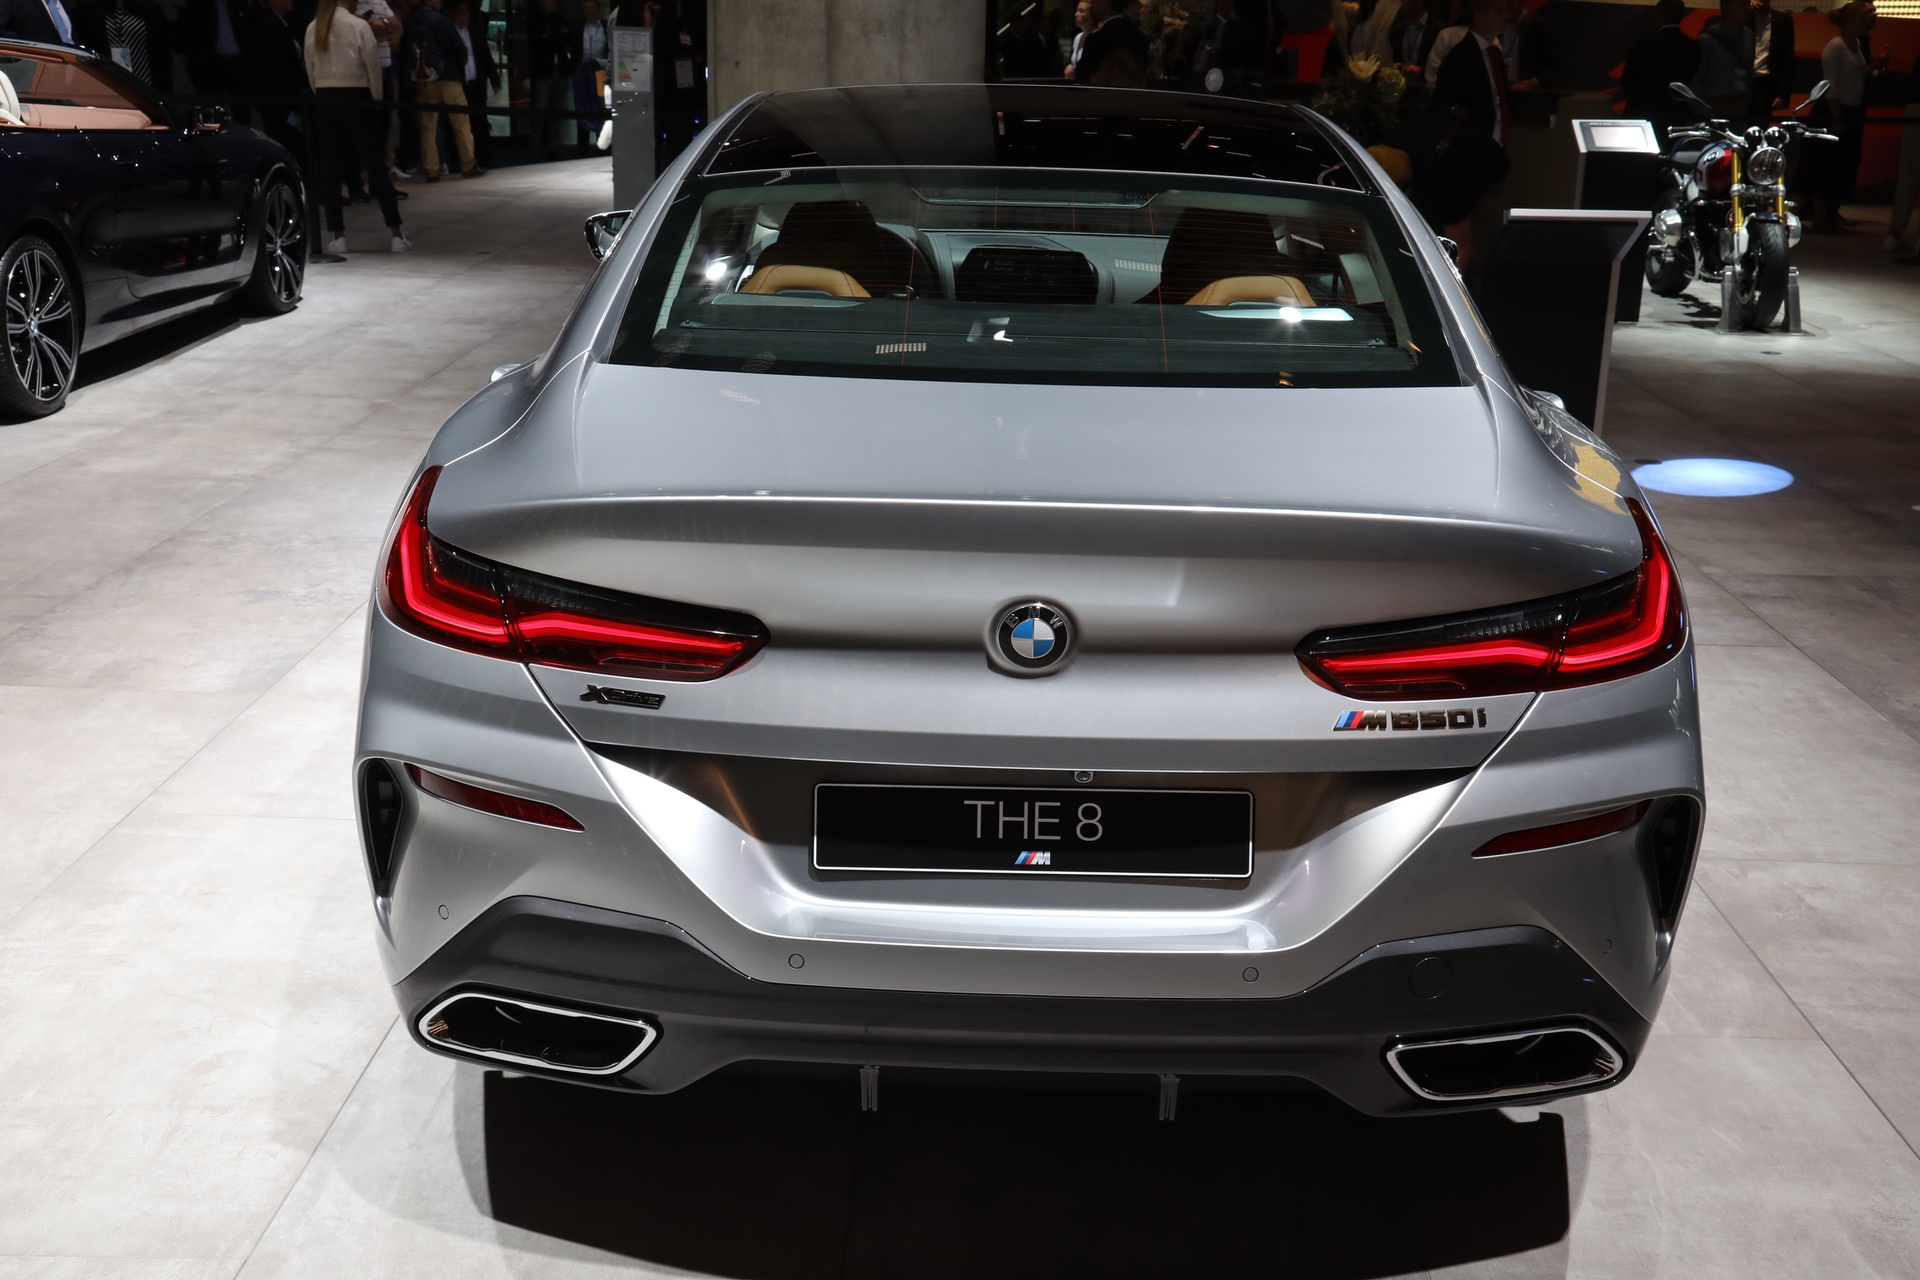 2019 IAA: BMW 8 Series Gran Coupe in Pure Metal Silver – One Of The Most Expensive Color